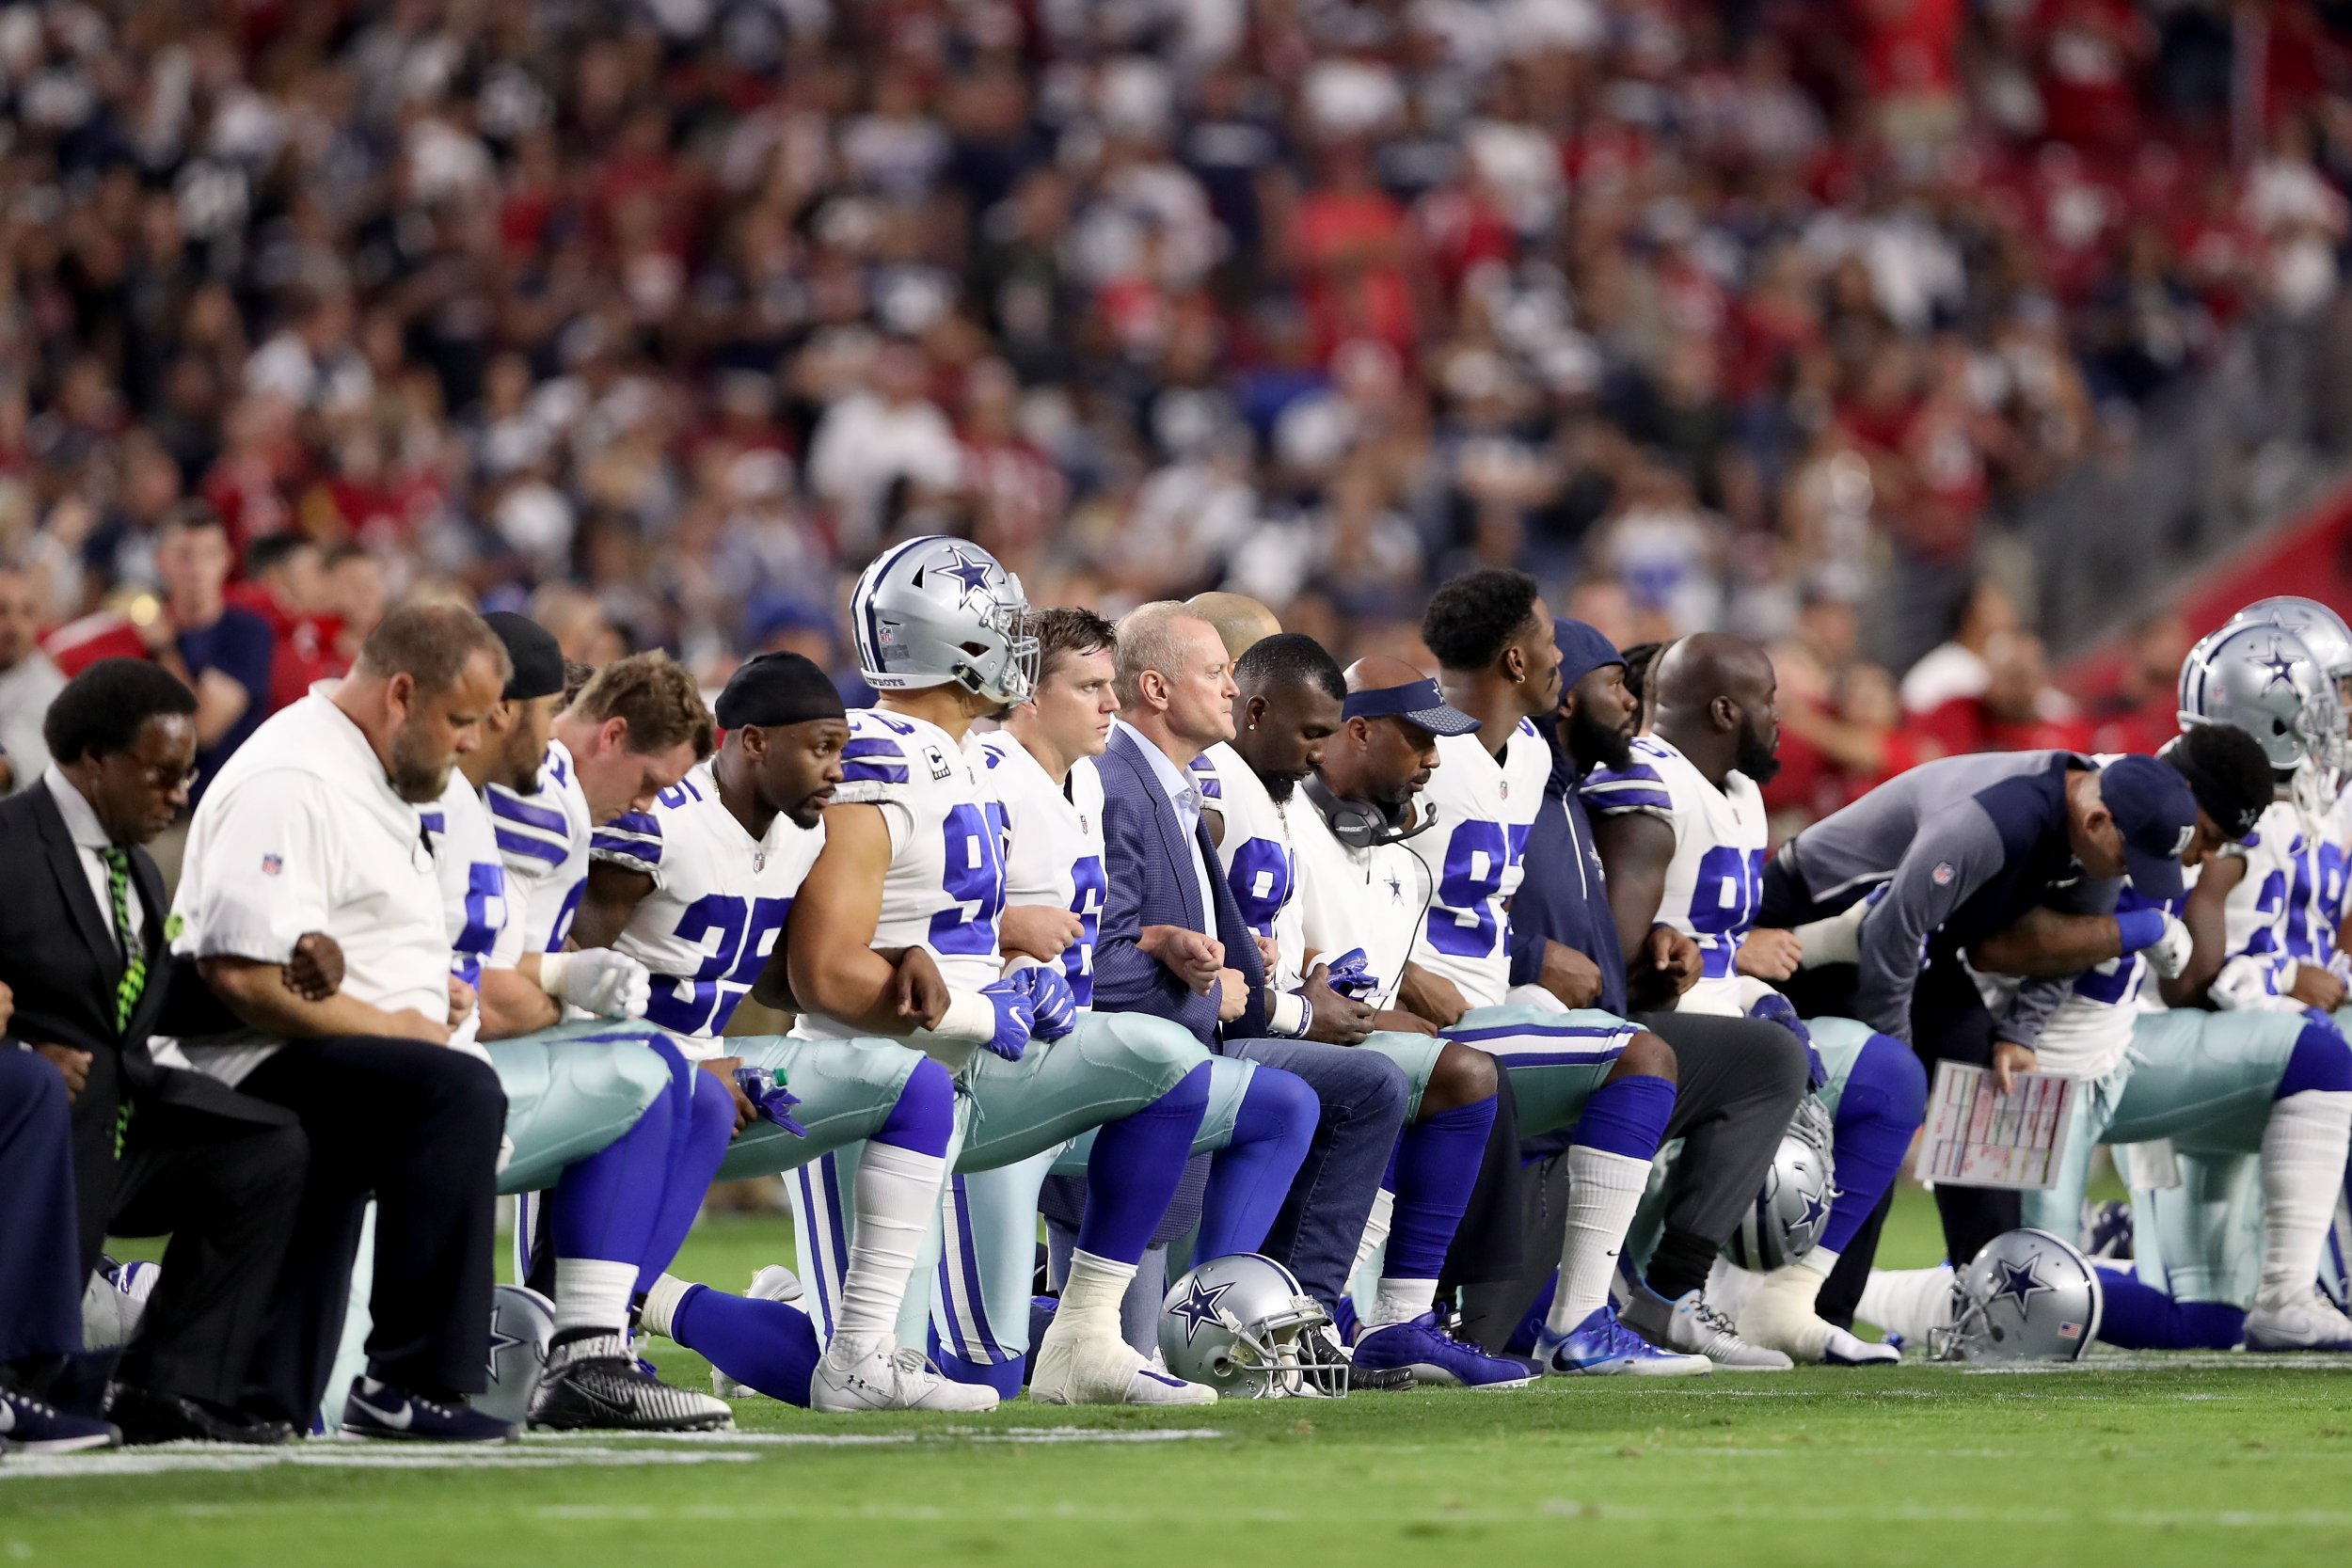 Louisiana High School Orders Athletes to Stand During Anthem—But Is It Legal?